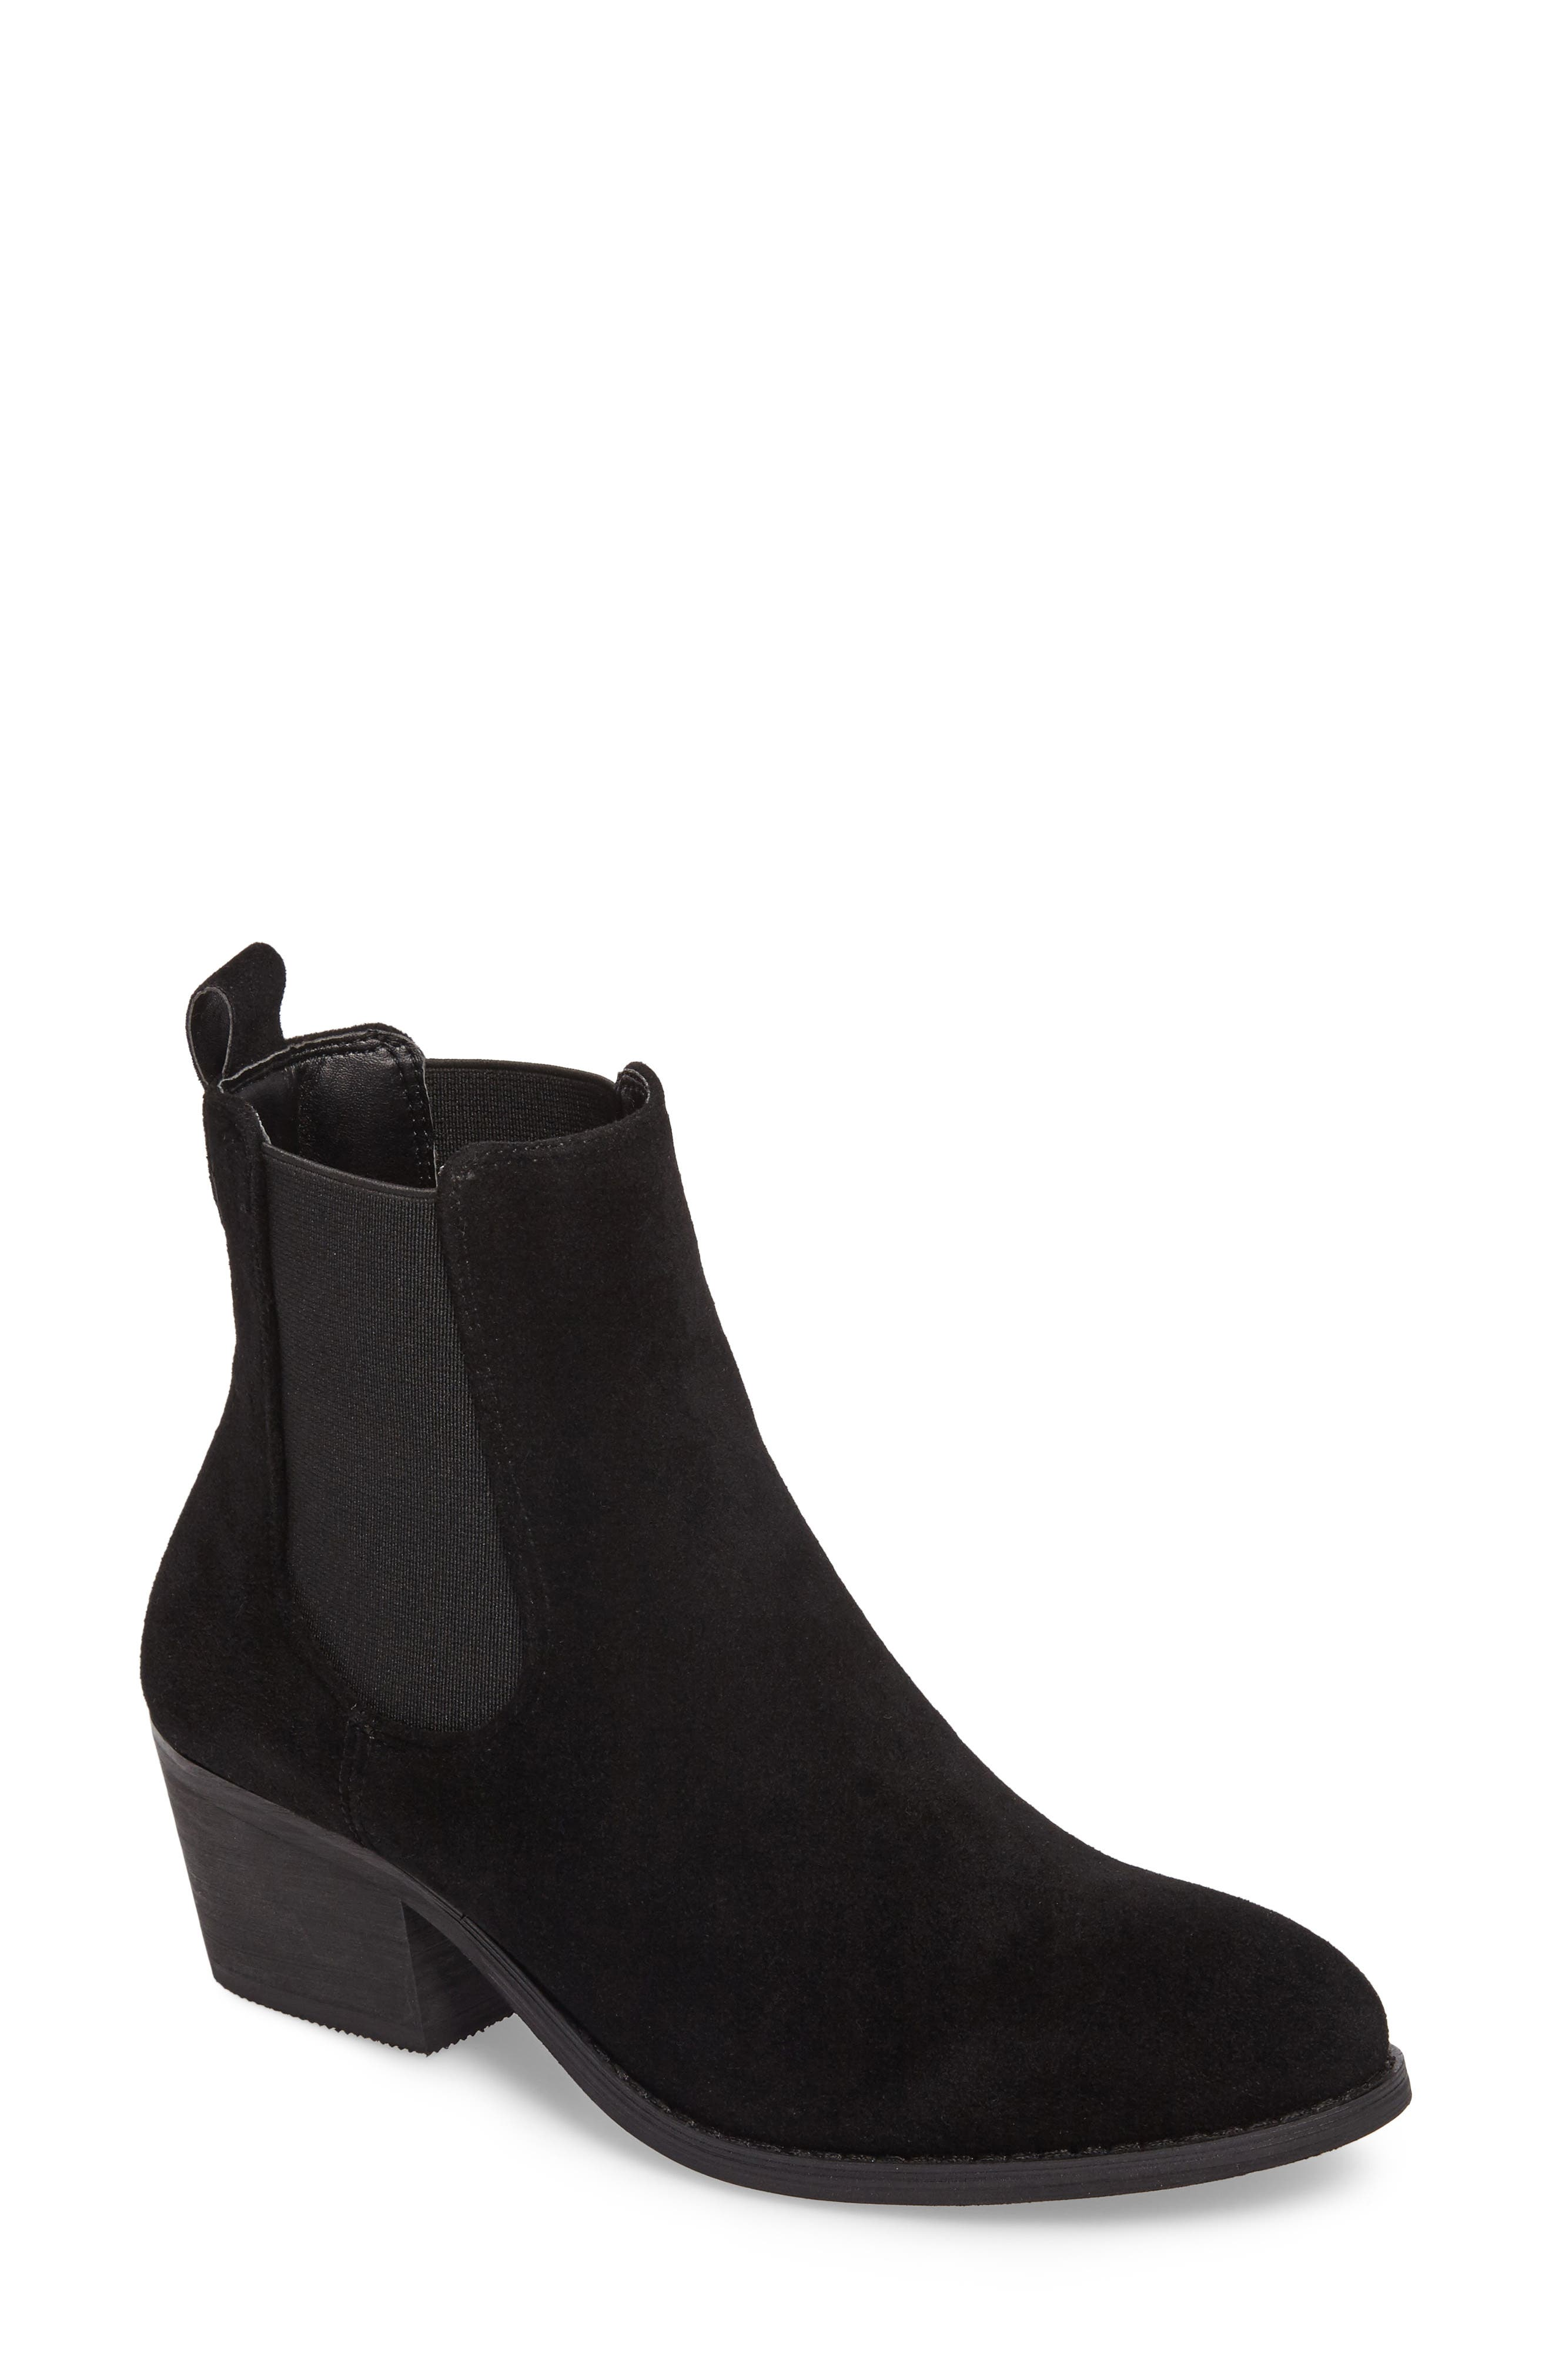 Ammore Chelsea Boot,                         Main,                         color, Black Suede